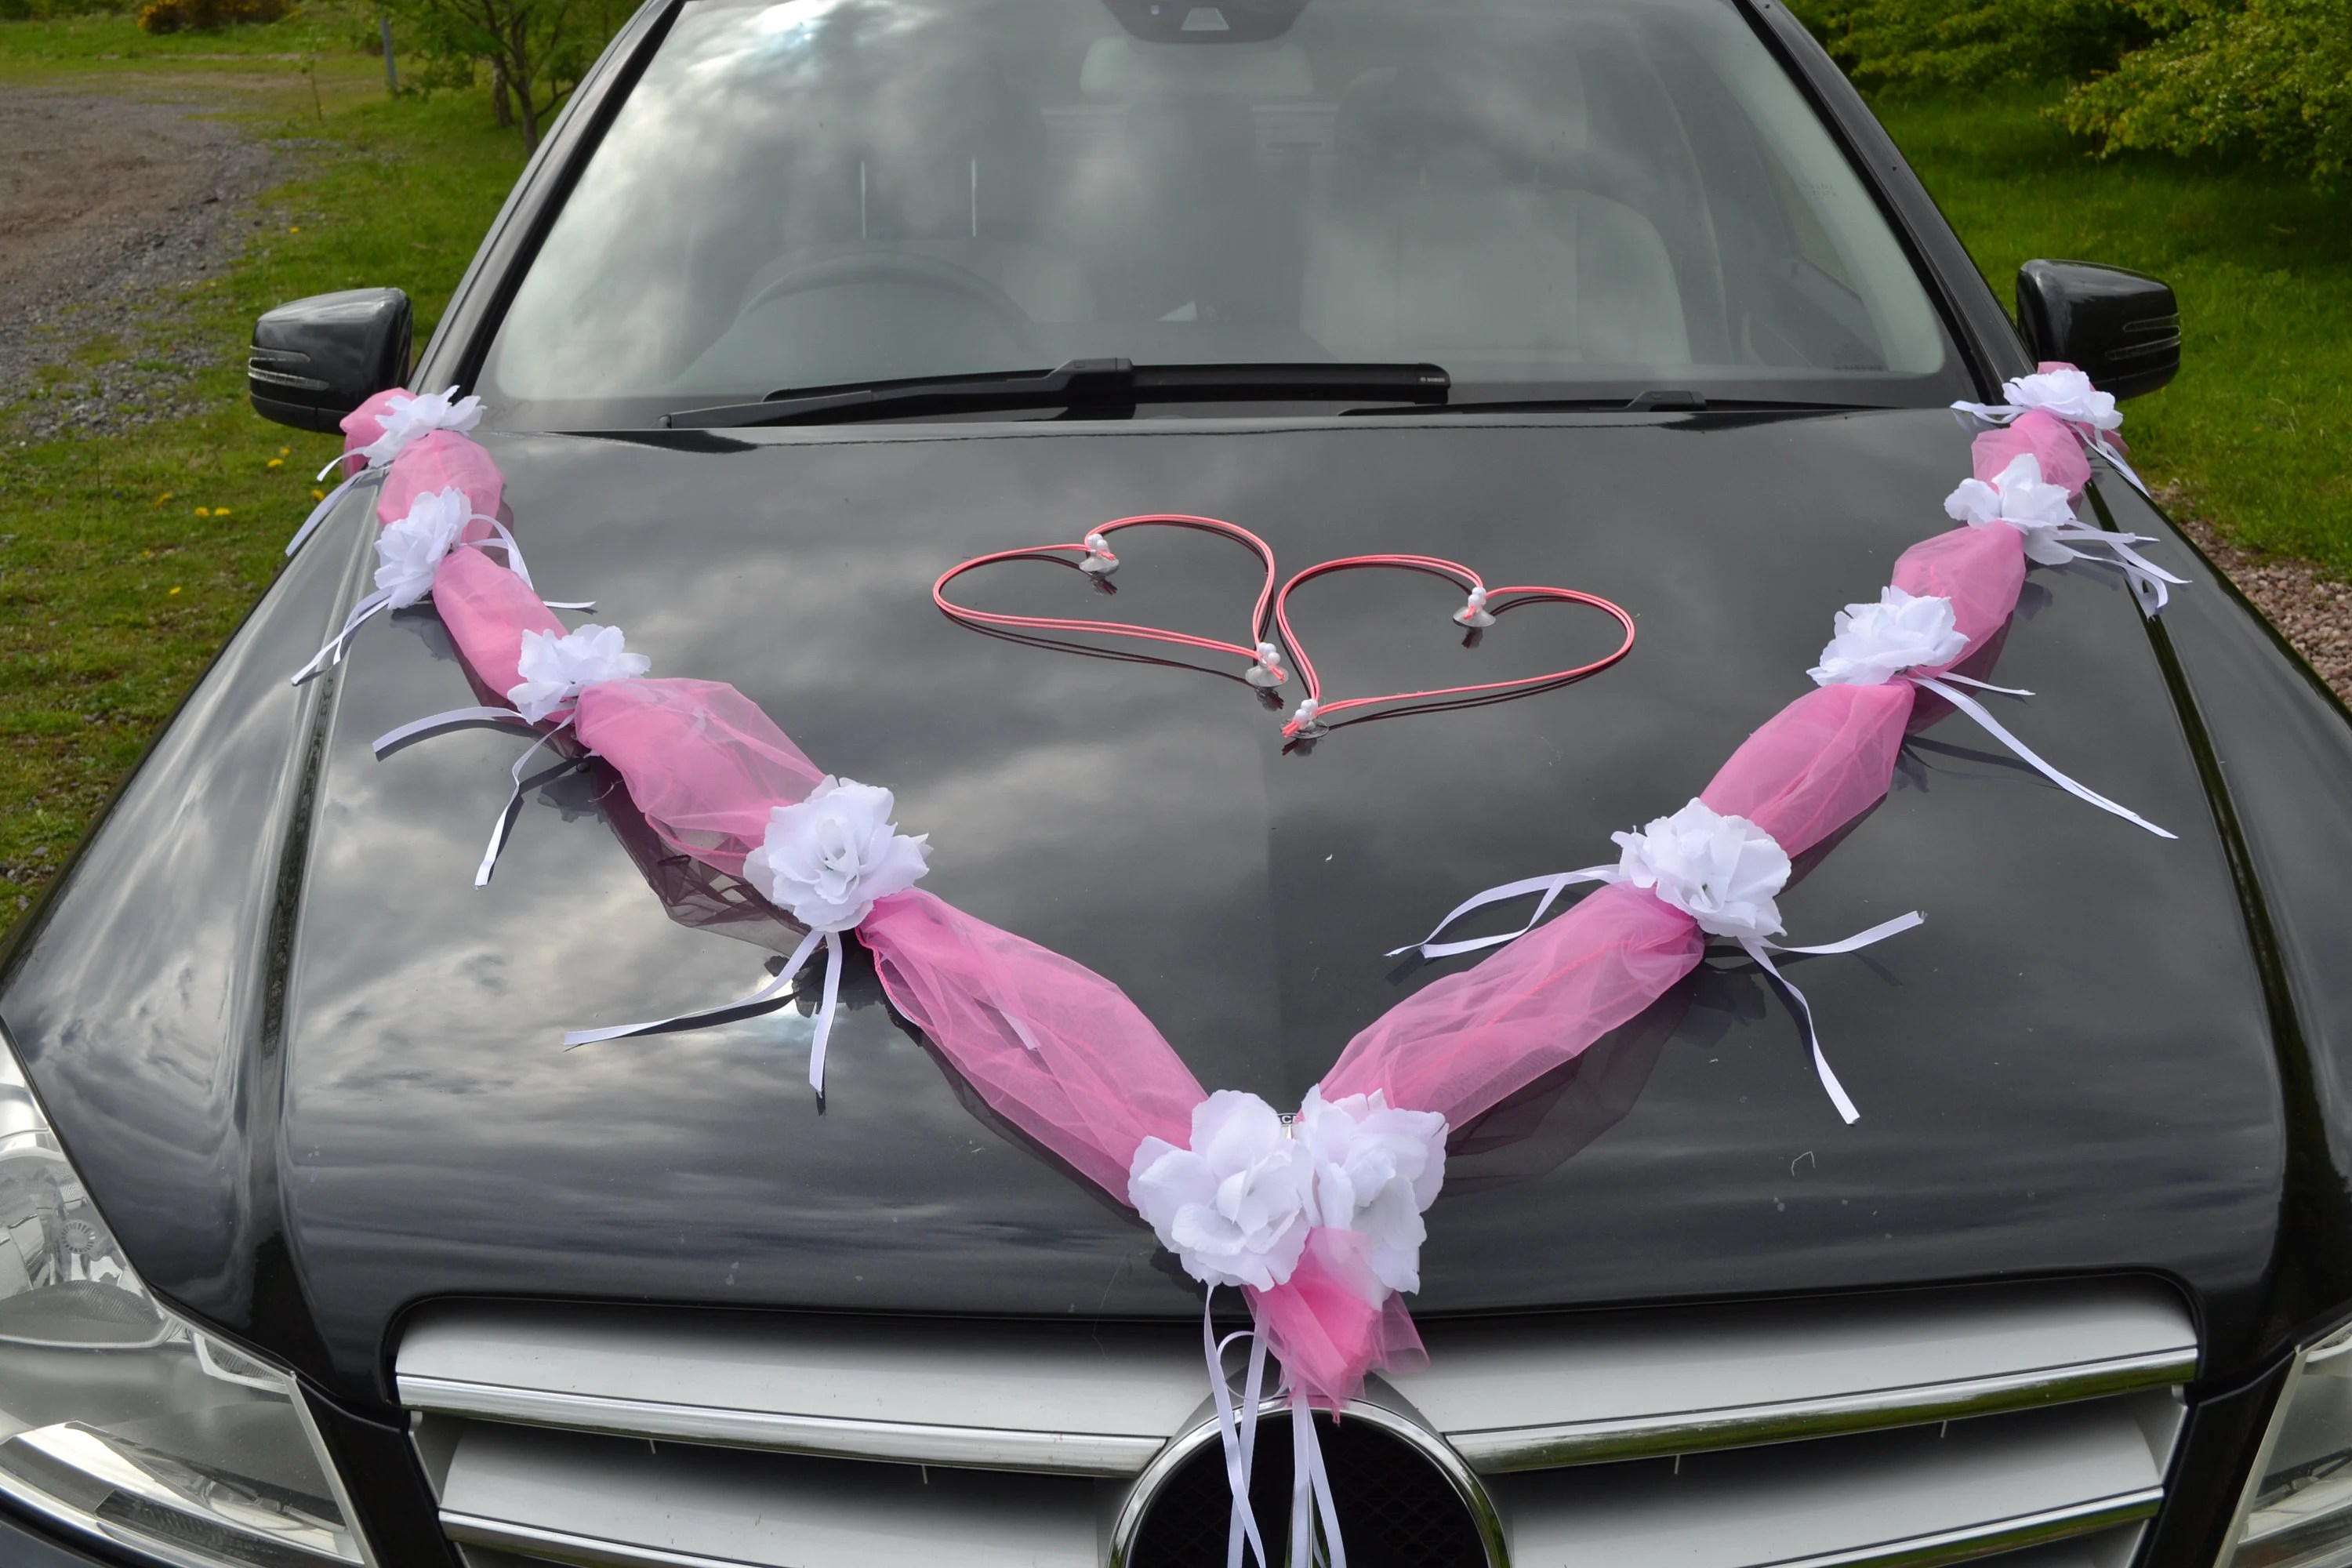 Car Decoration Weding Wedding Car Decoration Ribbon Bows Prom Limousine Decoration Garland Pink White Flowers